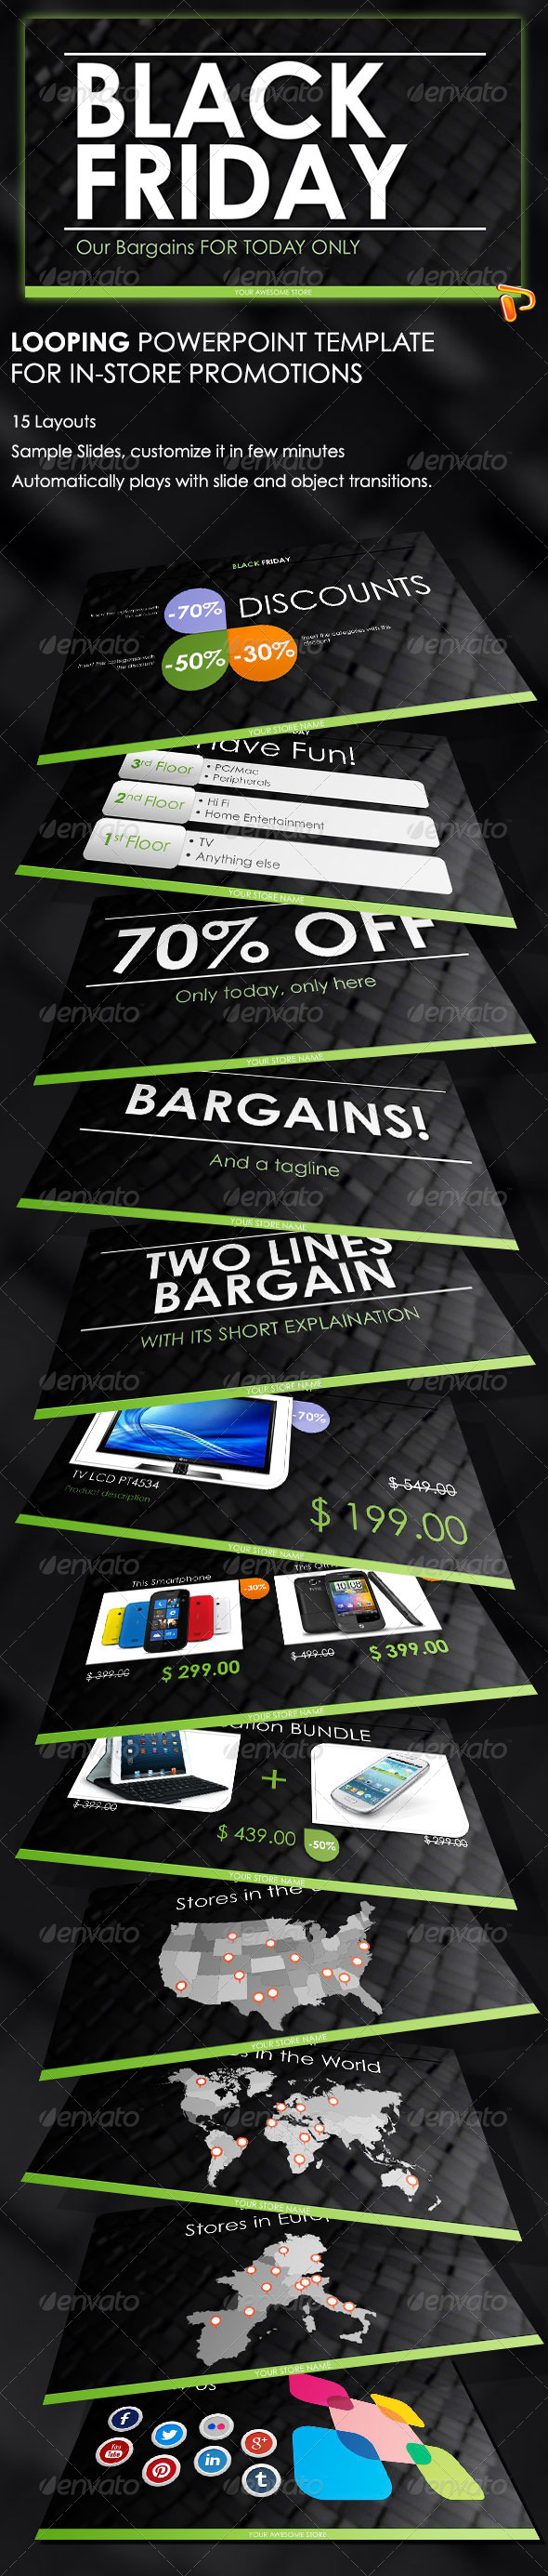 GraphicRiver Black Friday PowerPoint Template 5443857